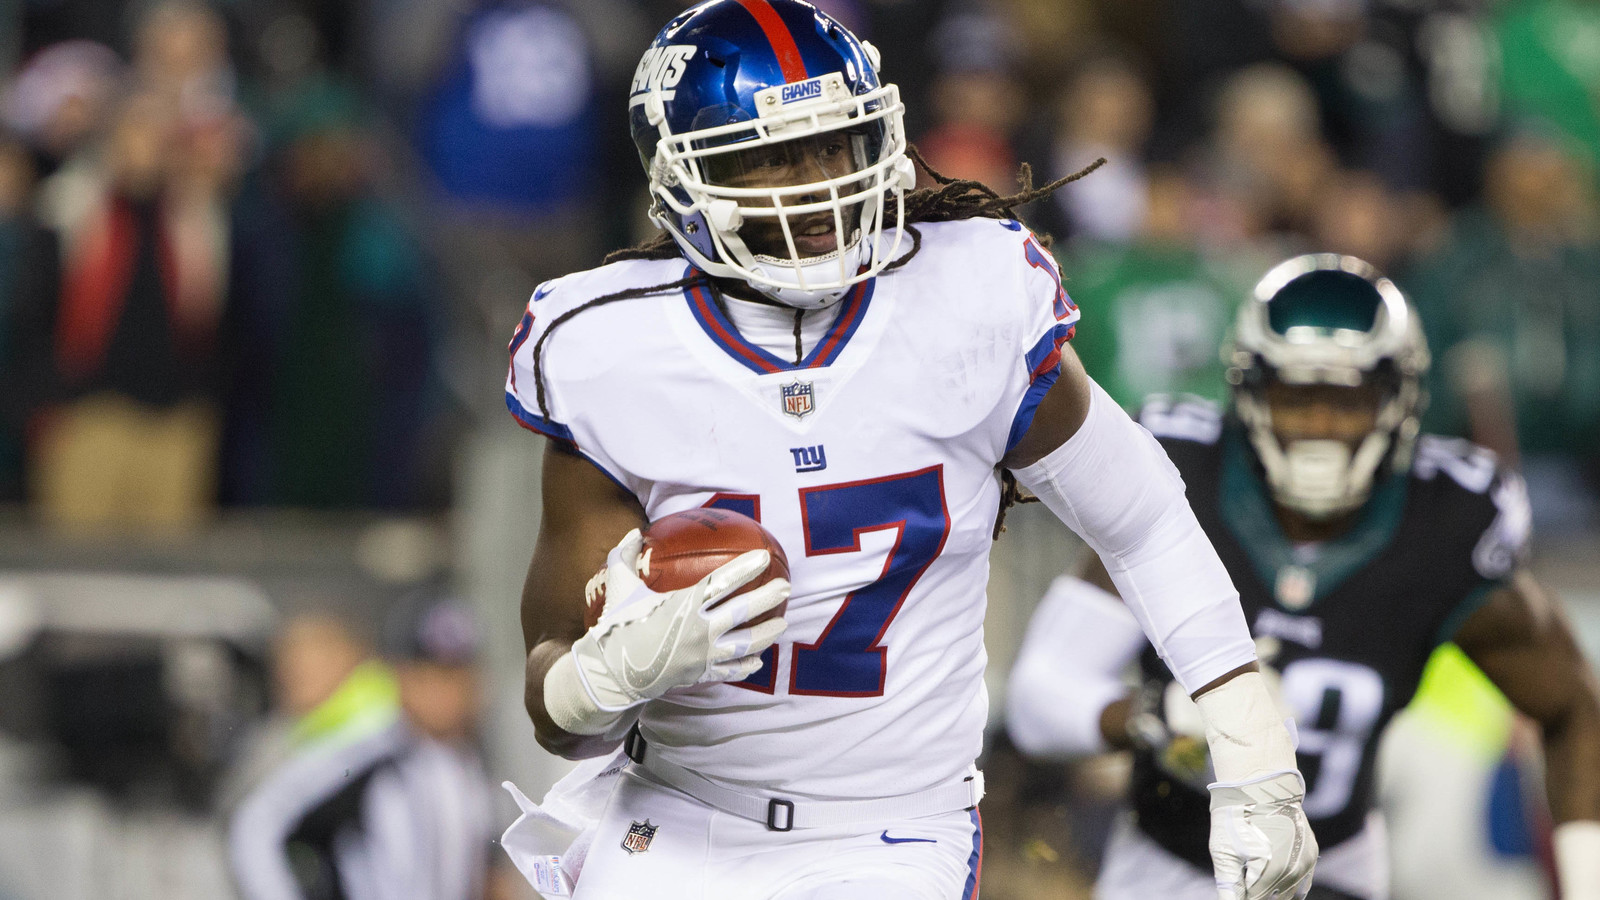 Dwayne Harris Signs Oakland Contract After 3 Years with Giants